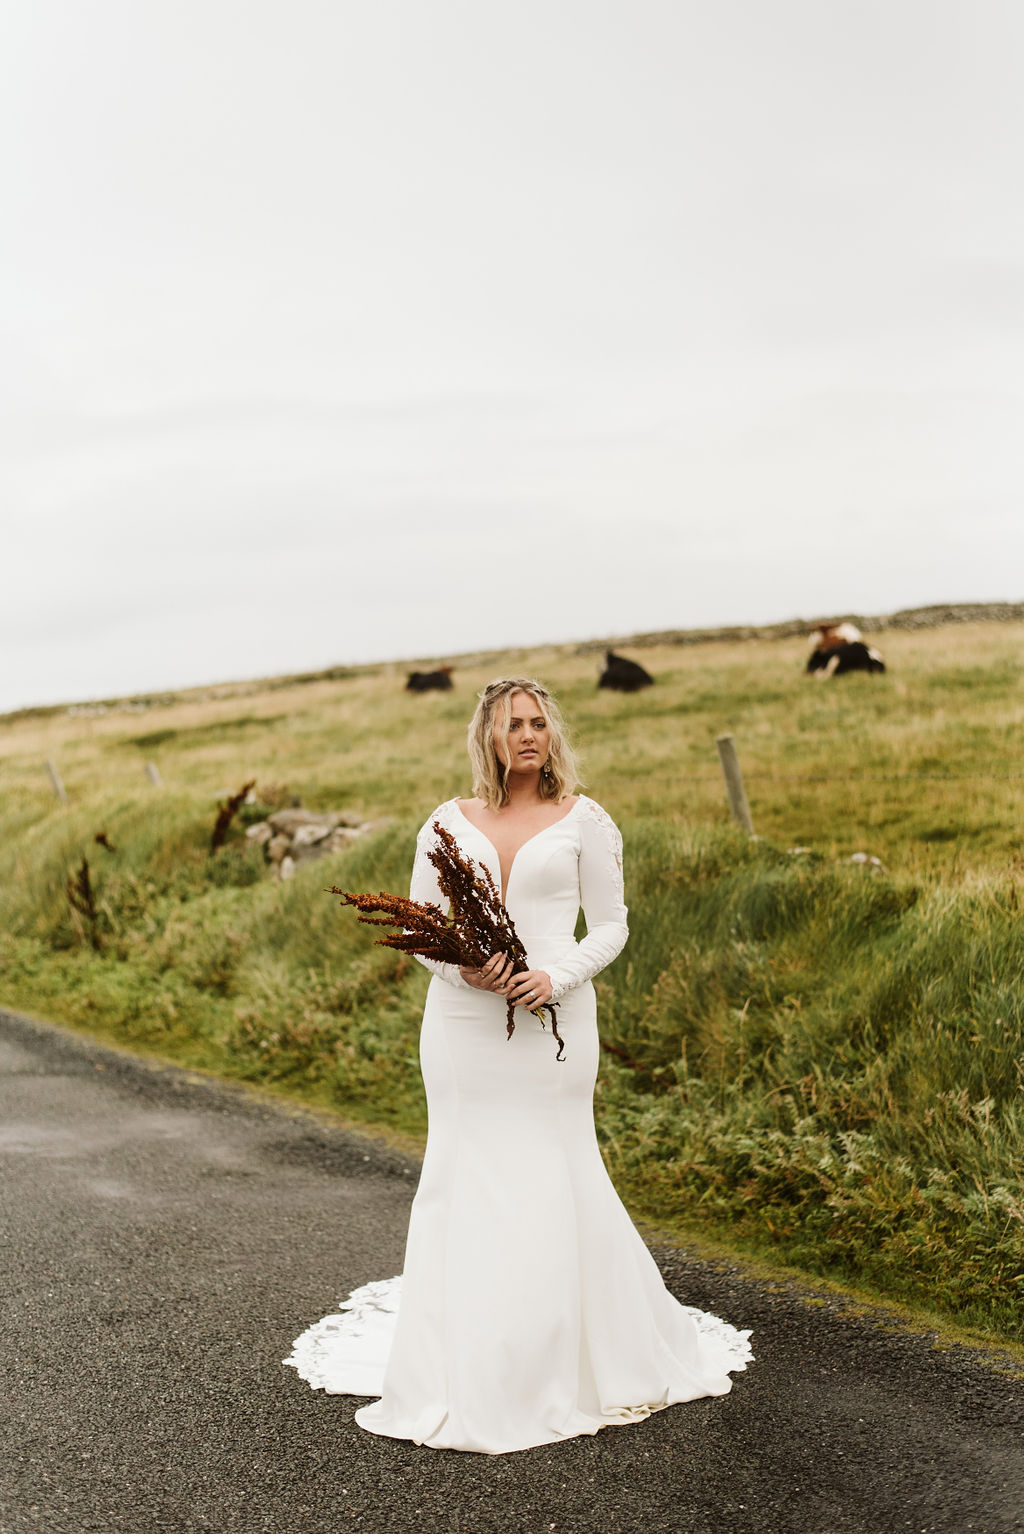 Bride holding wildflowers wearing a fitted long sleeve wedding dress at Mullaghmore Head in Ireland